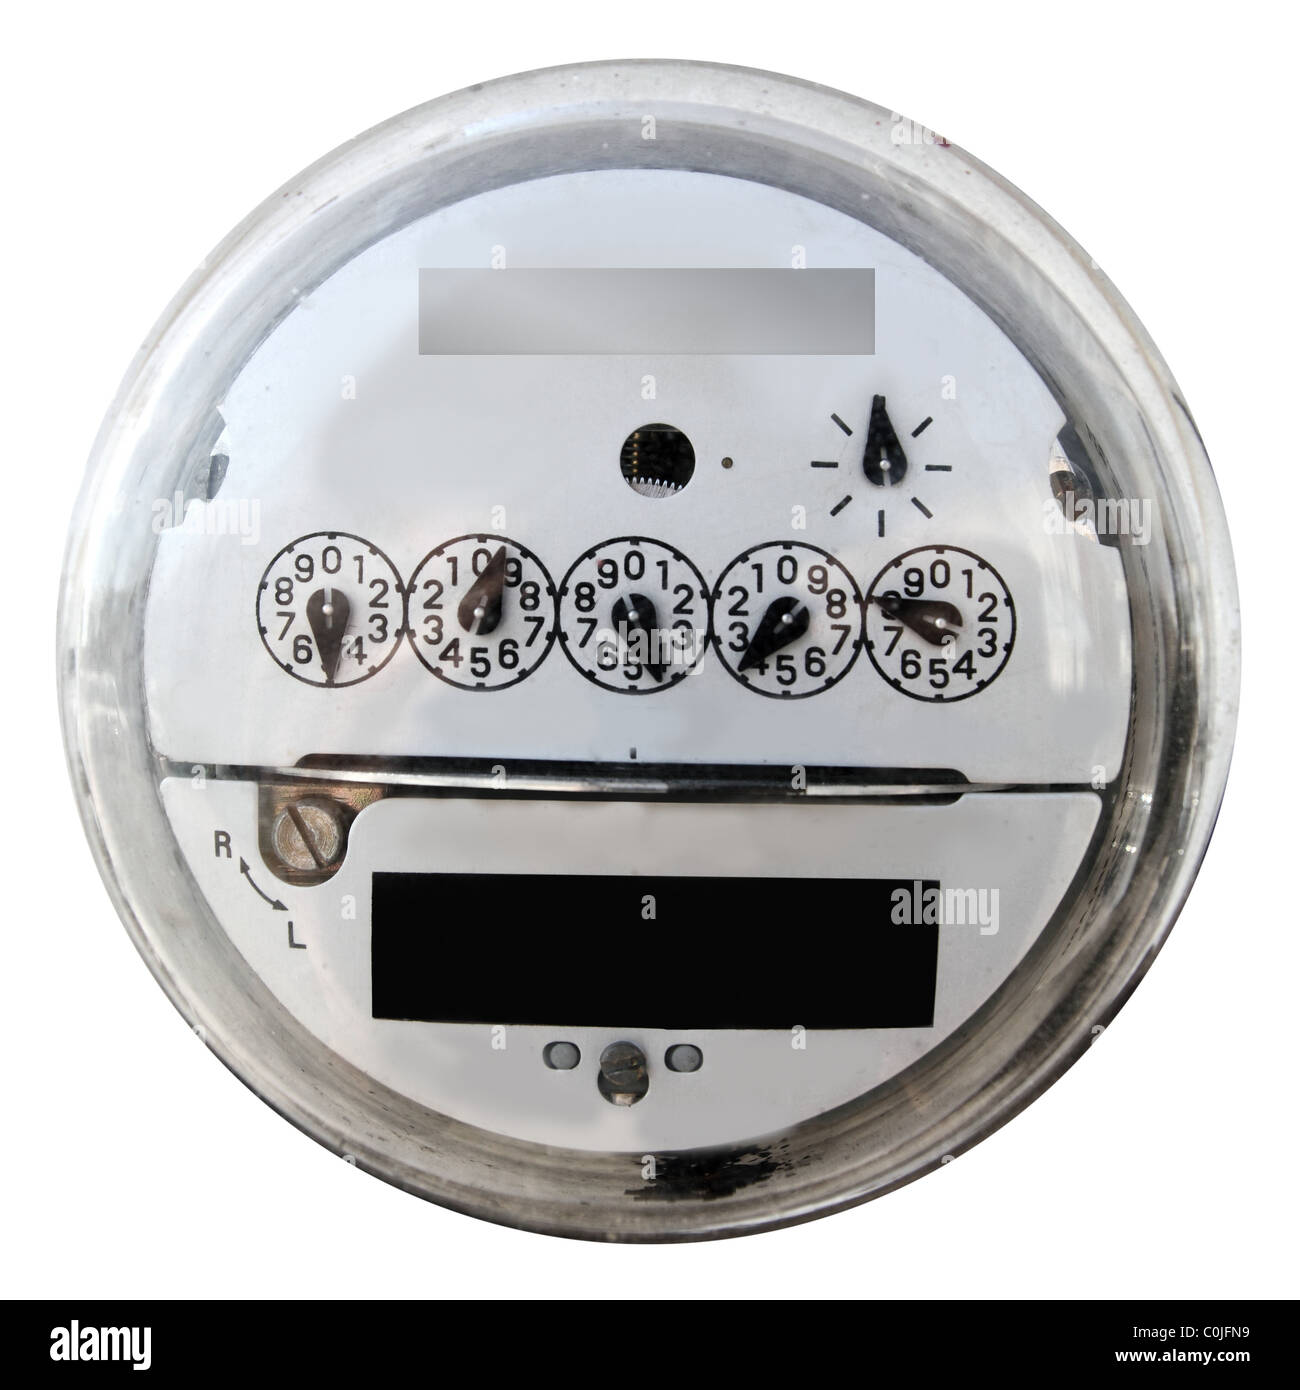 Analog electric meter display round with glass cover - Stock Image